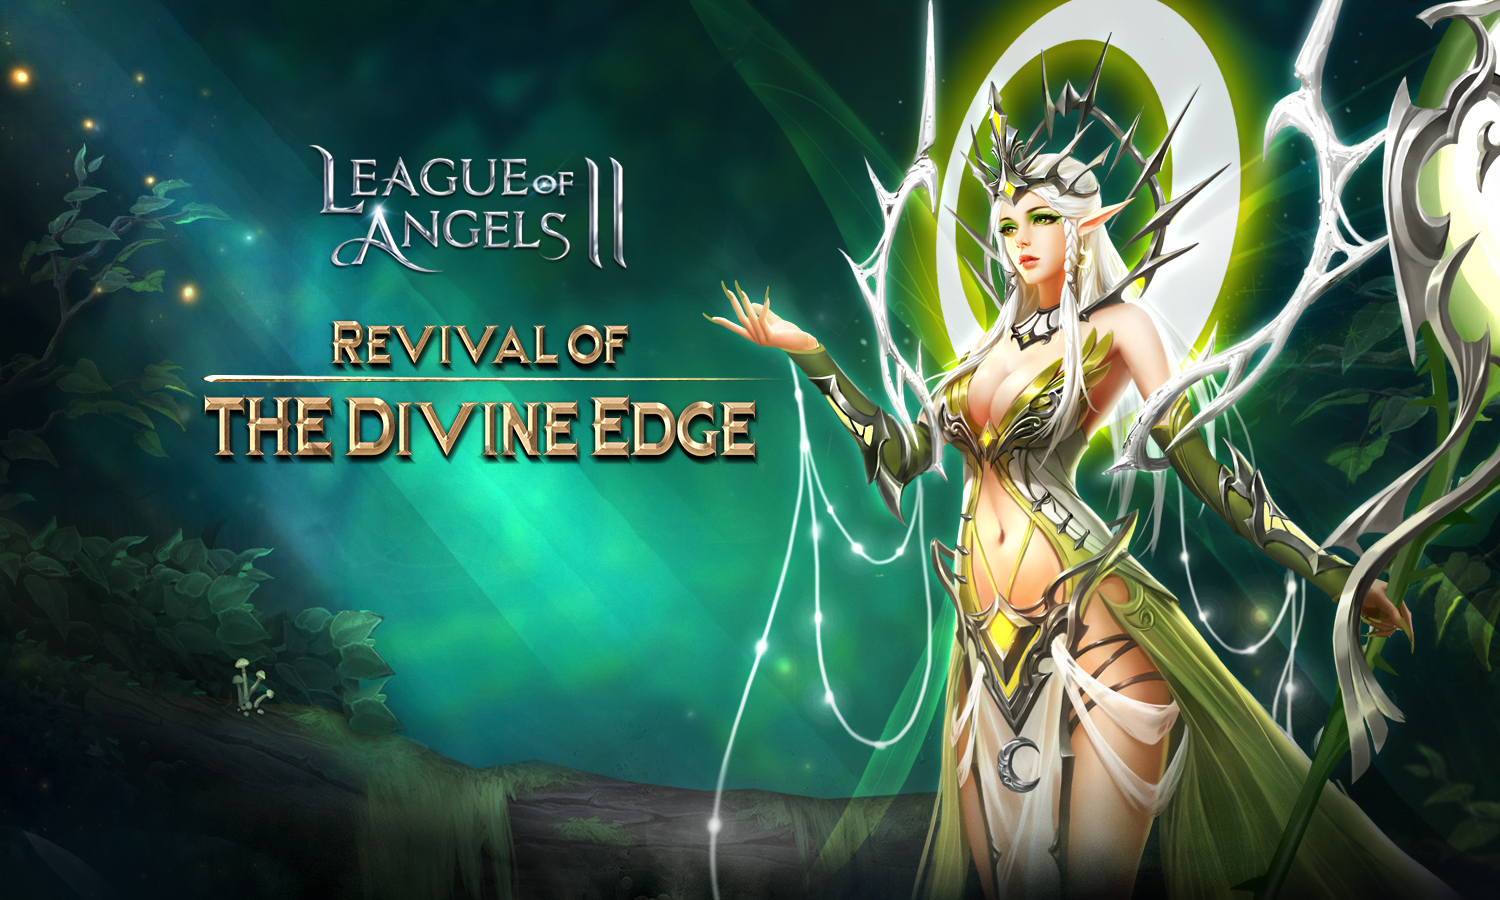 league of angels 2 code giveaway 2019